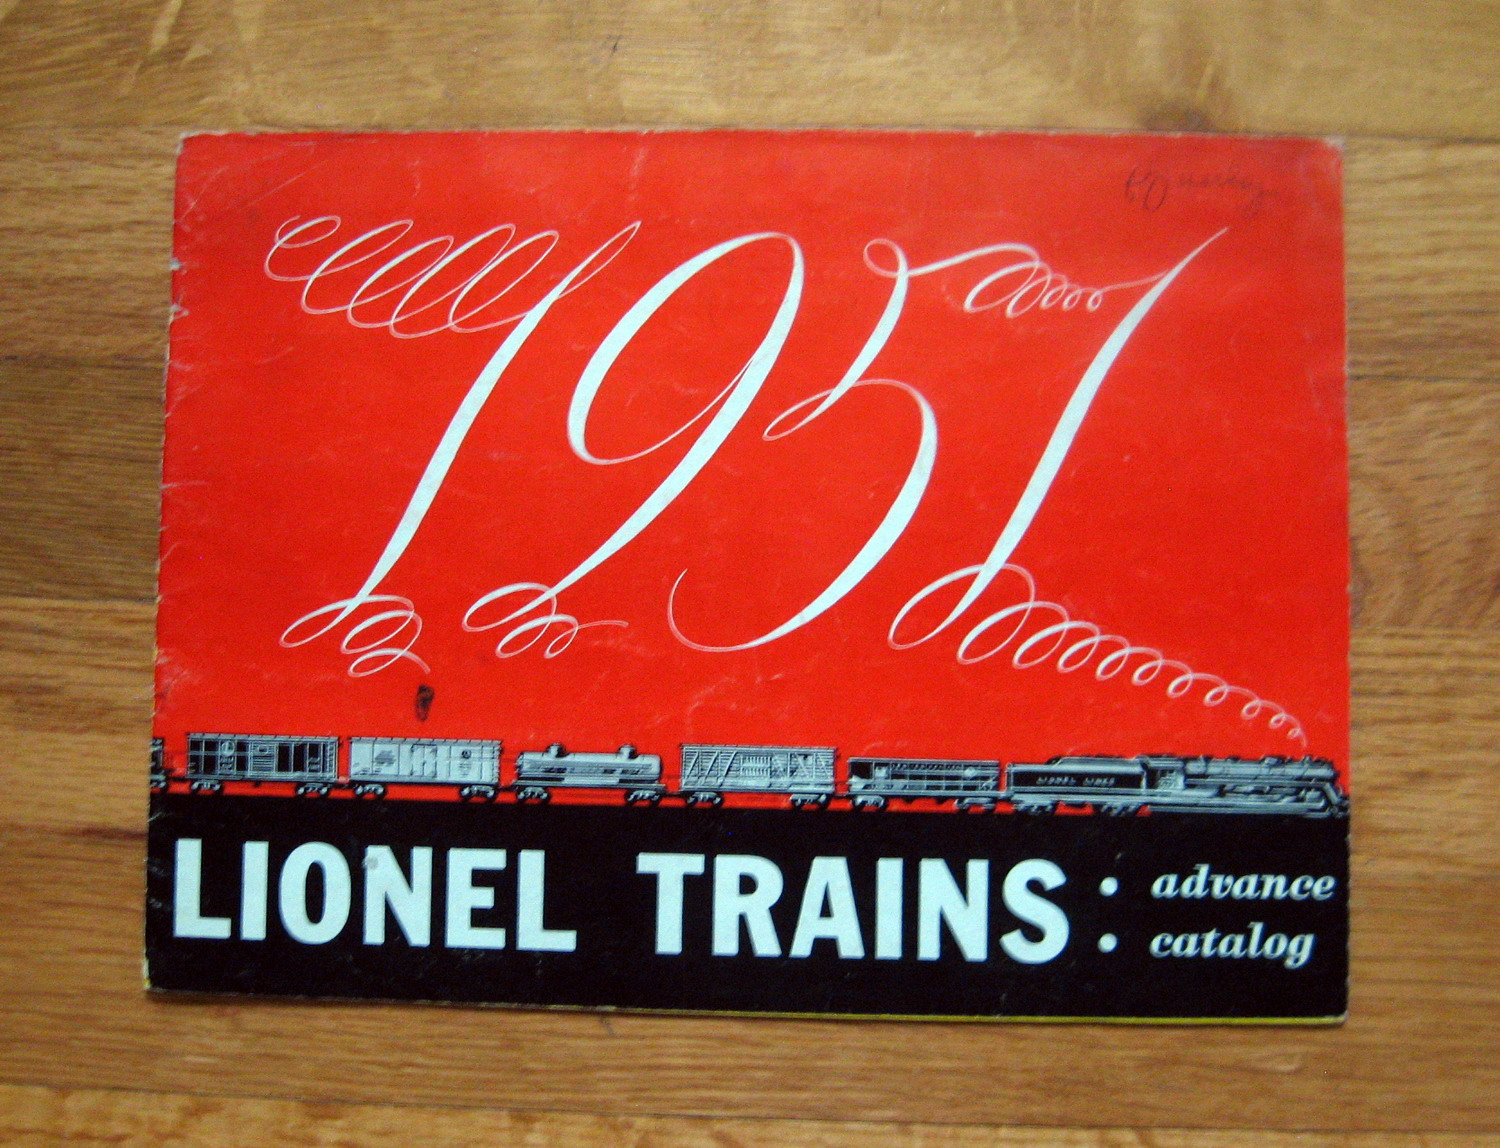 1951 Lionel Advance Catalog Very Good Condition